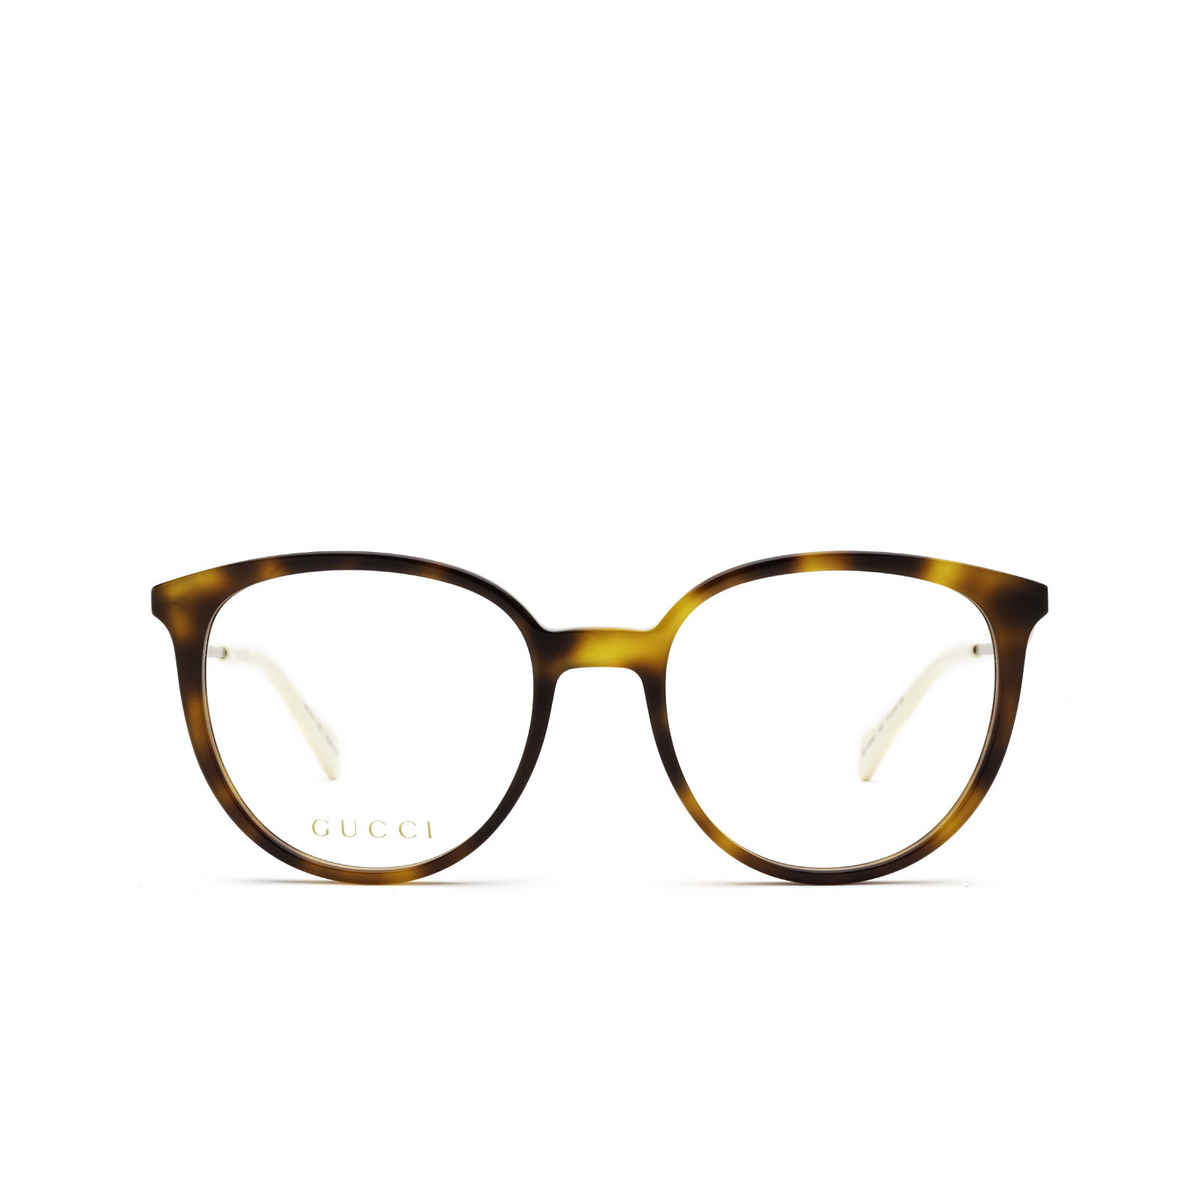 Gucci® Round Eyeglasses: GG1008O color Havana 003 - front view.